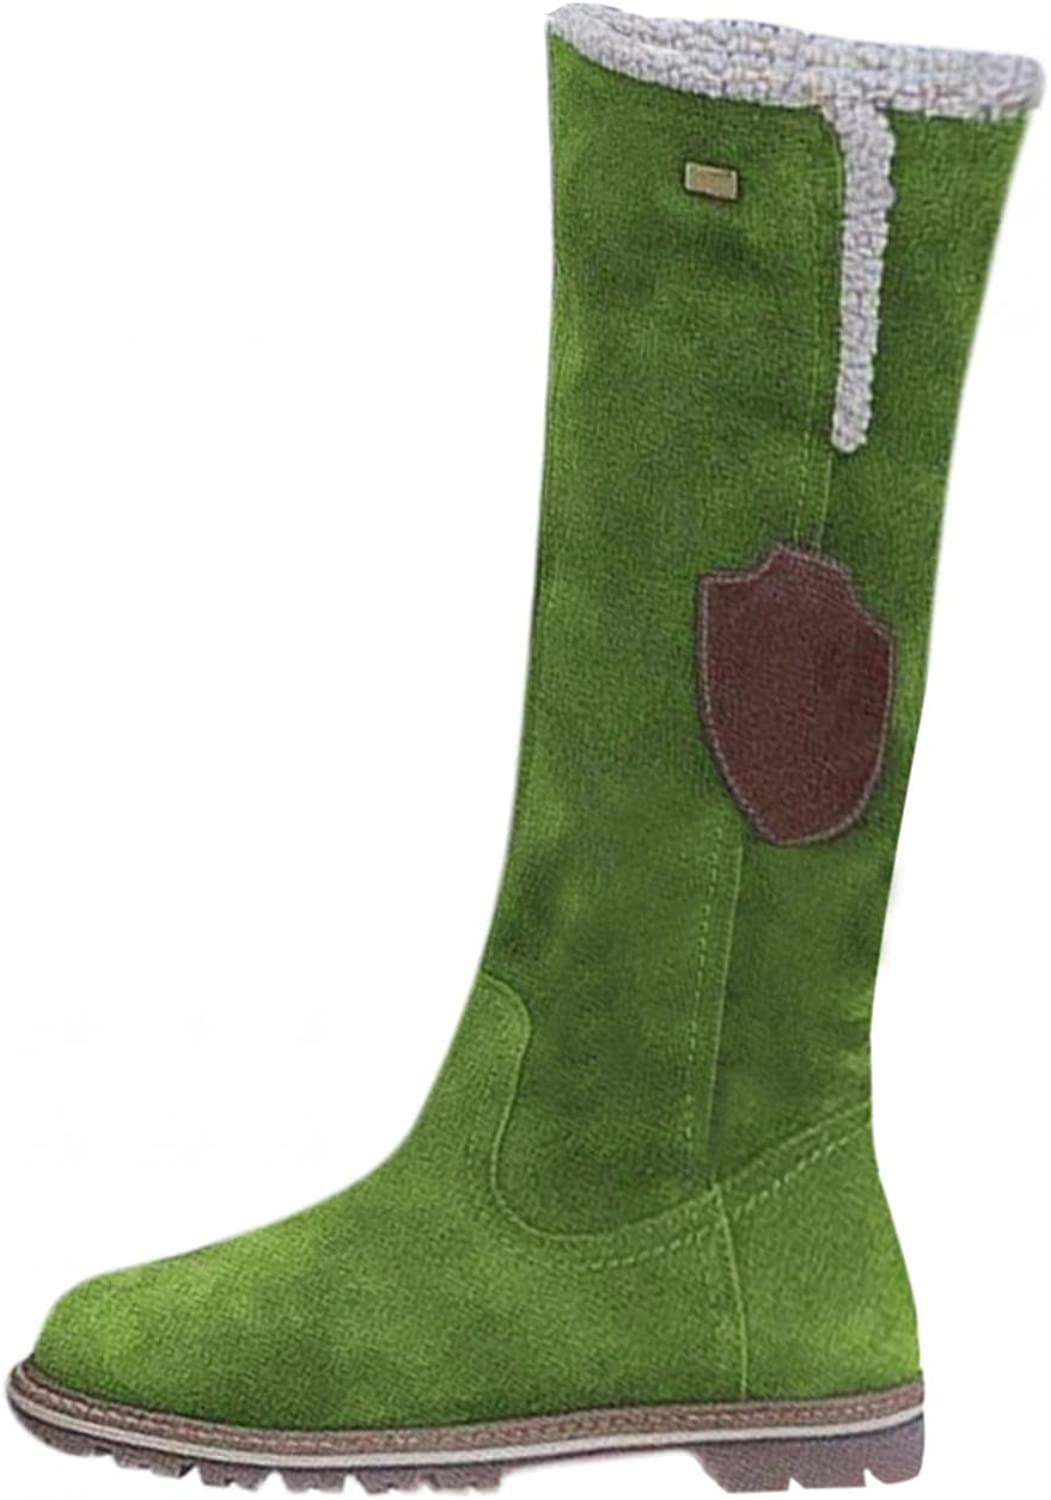 Knee High Brand new Snow Boots for Comfy Women Plush Lined Max 90% OFF Warm